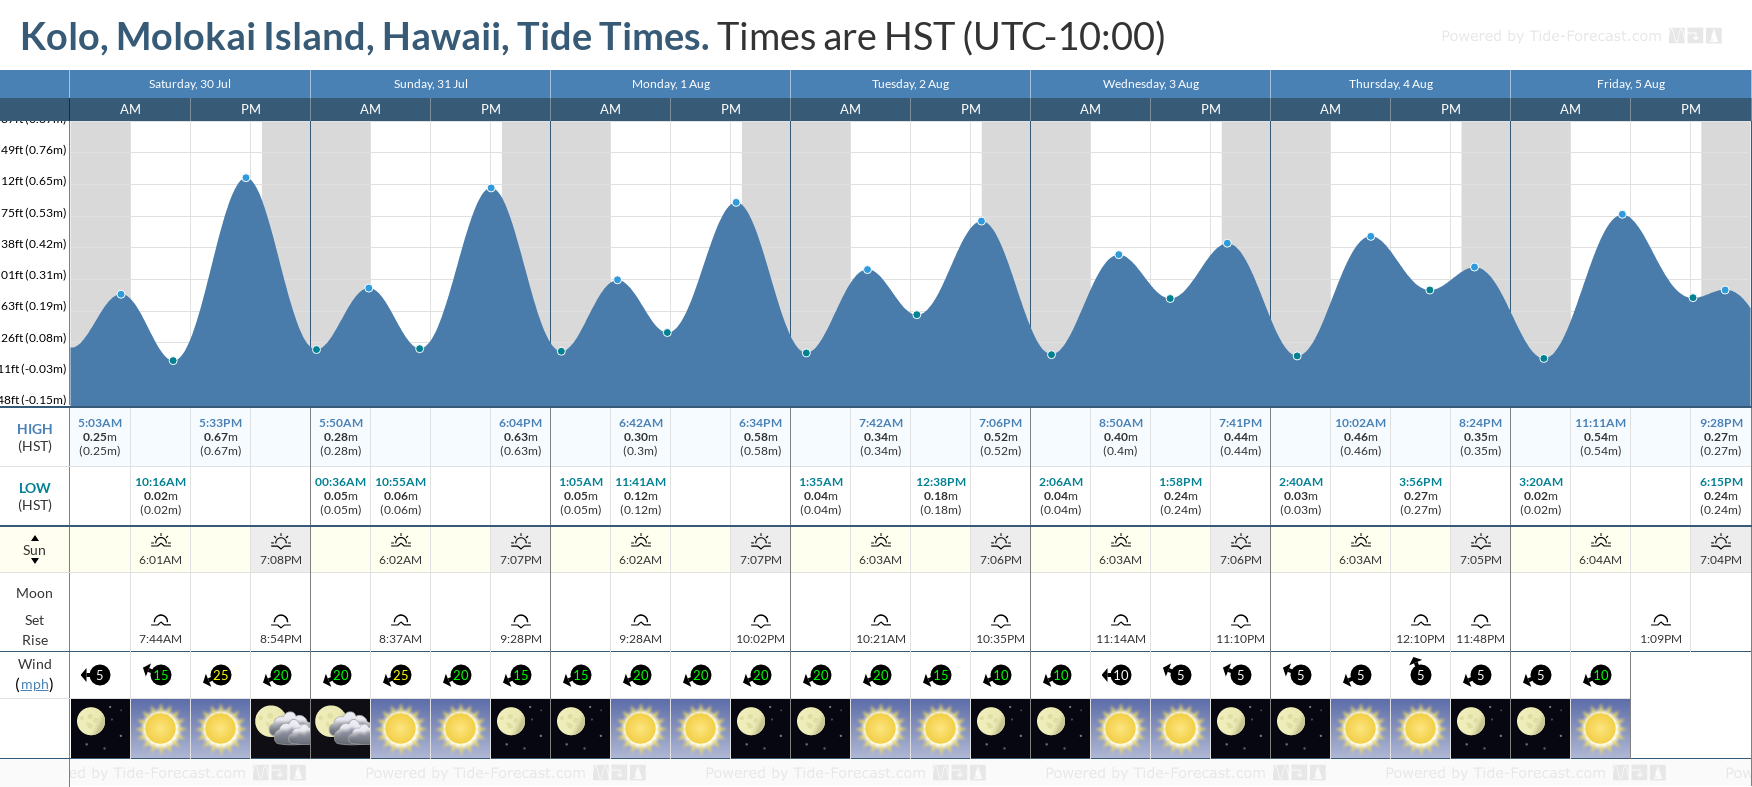 Kolo, Molokai Island, Hawaii Tide Chart including high and low tide tide times for the next 7 days